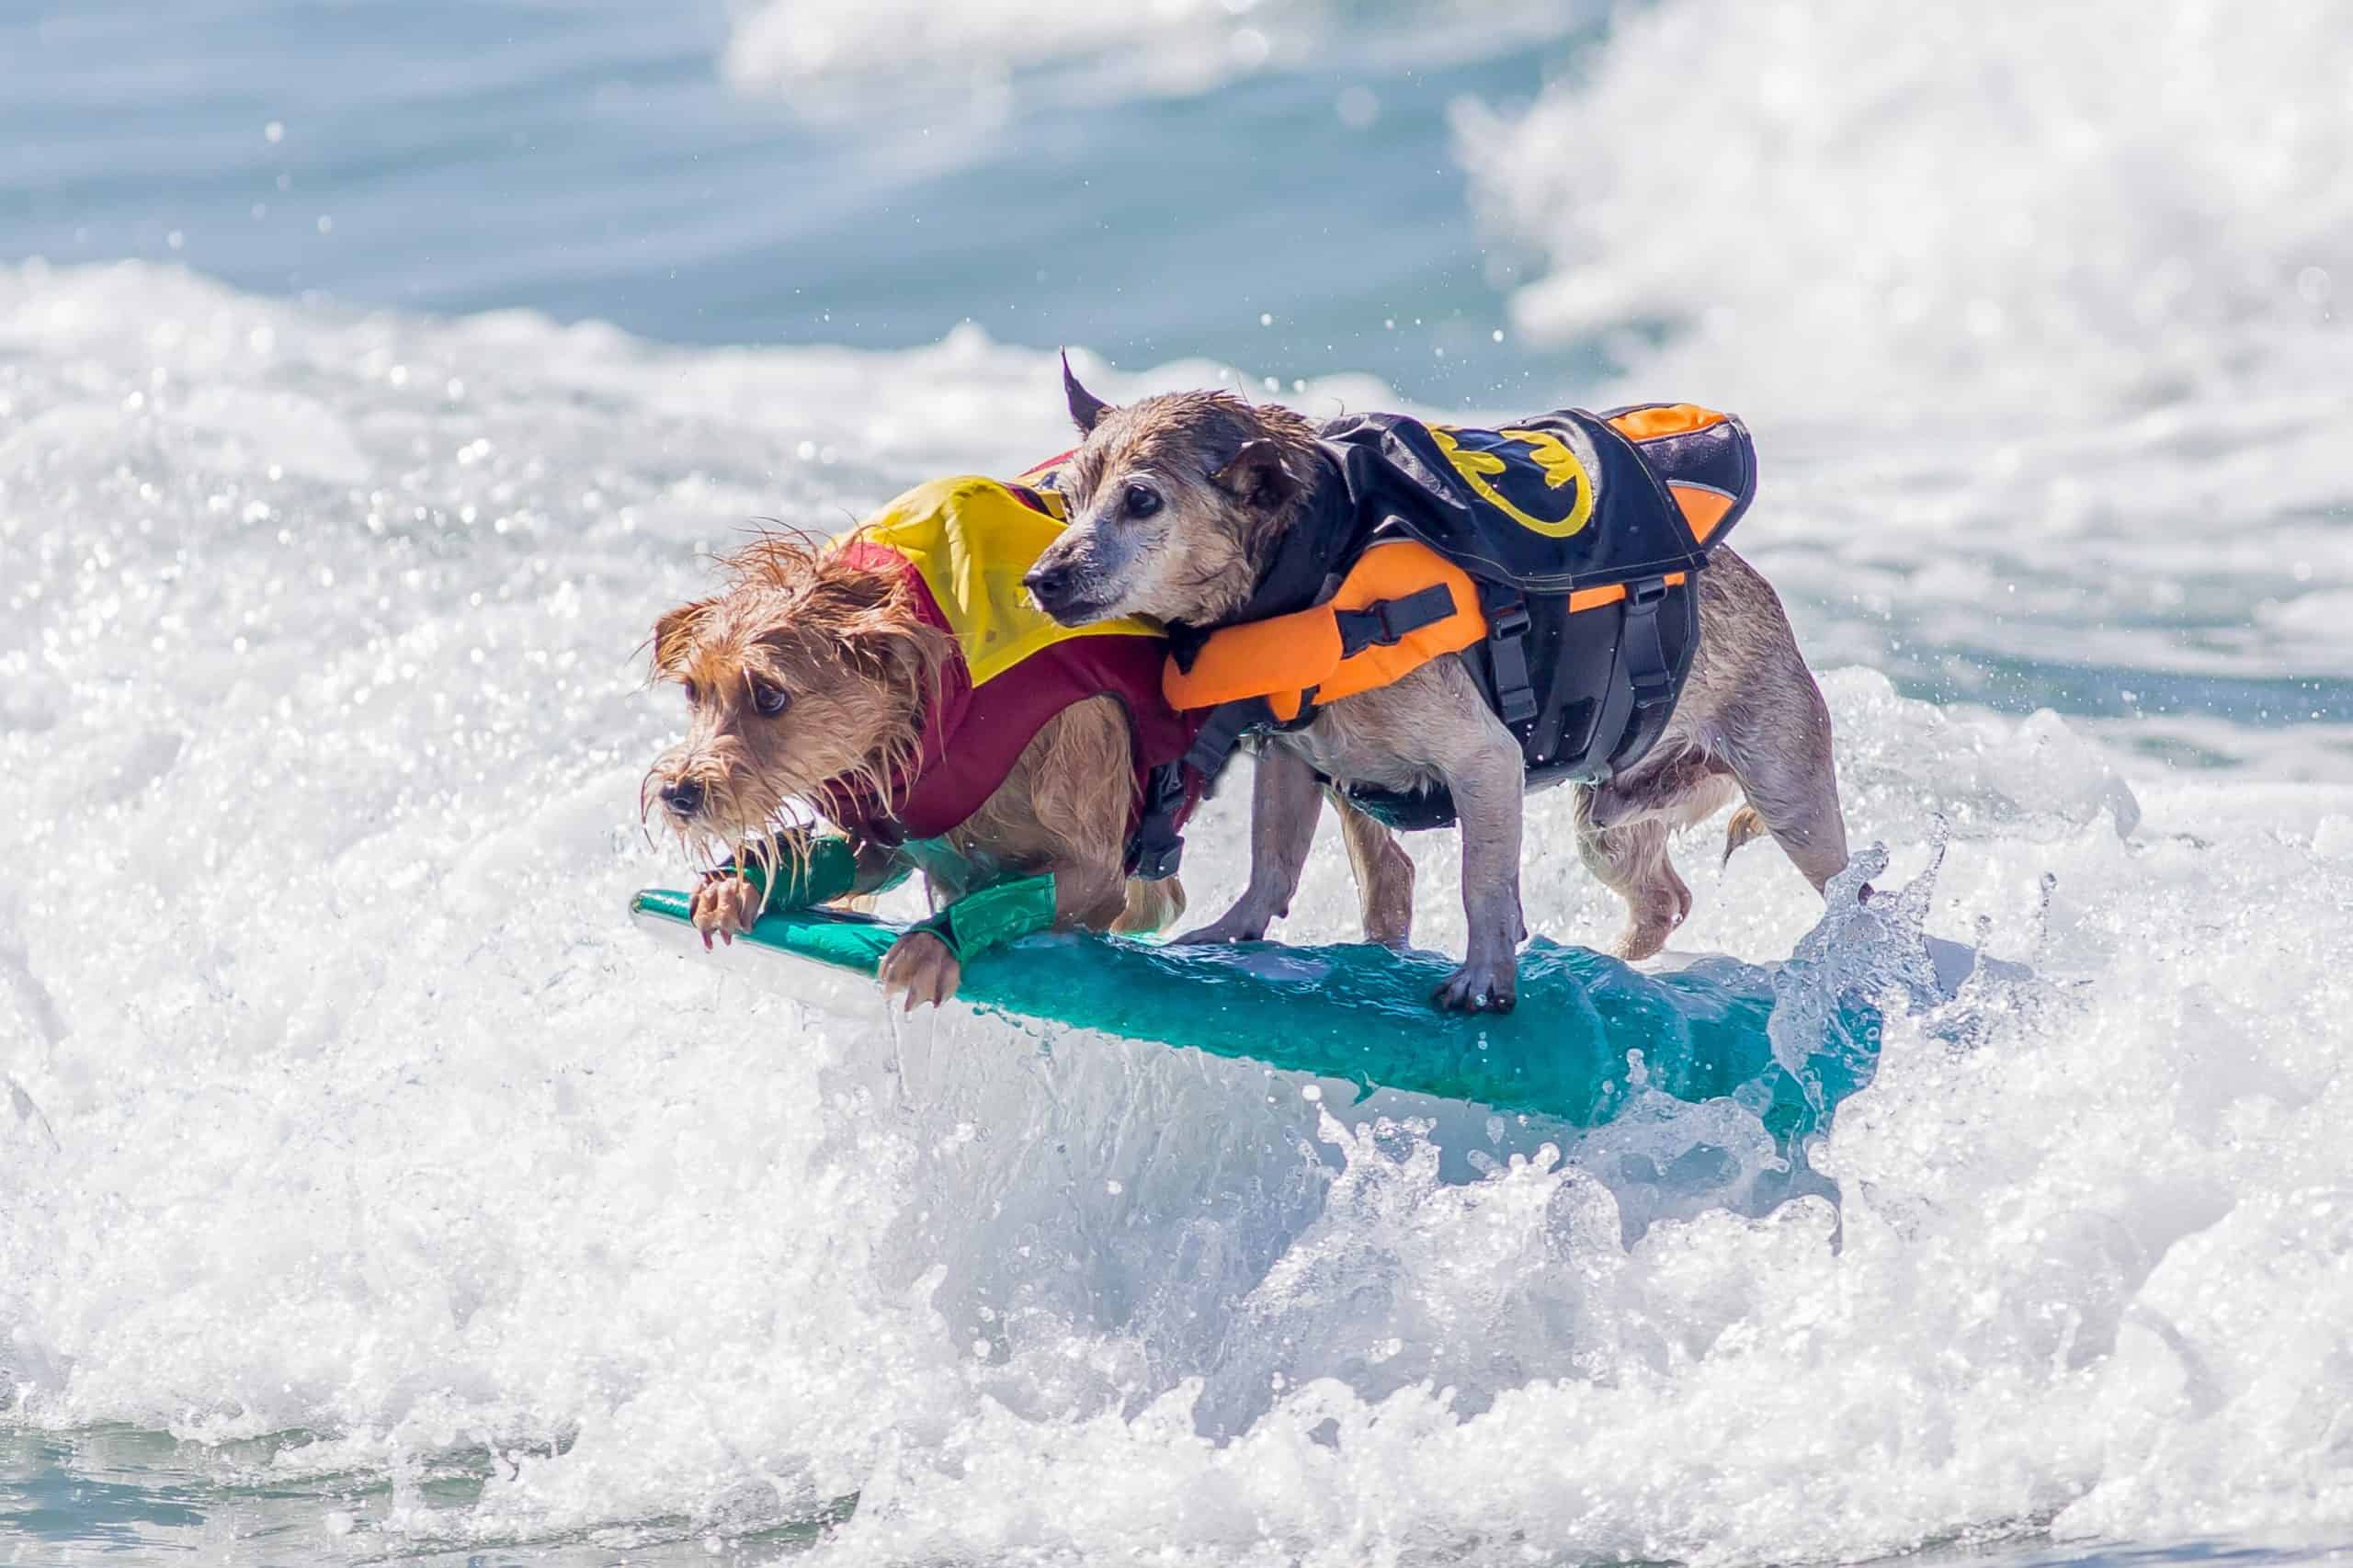 Two dogs ride the waves on a surfboard.